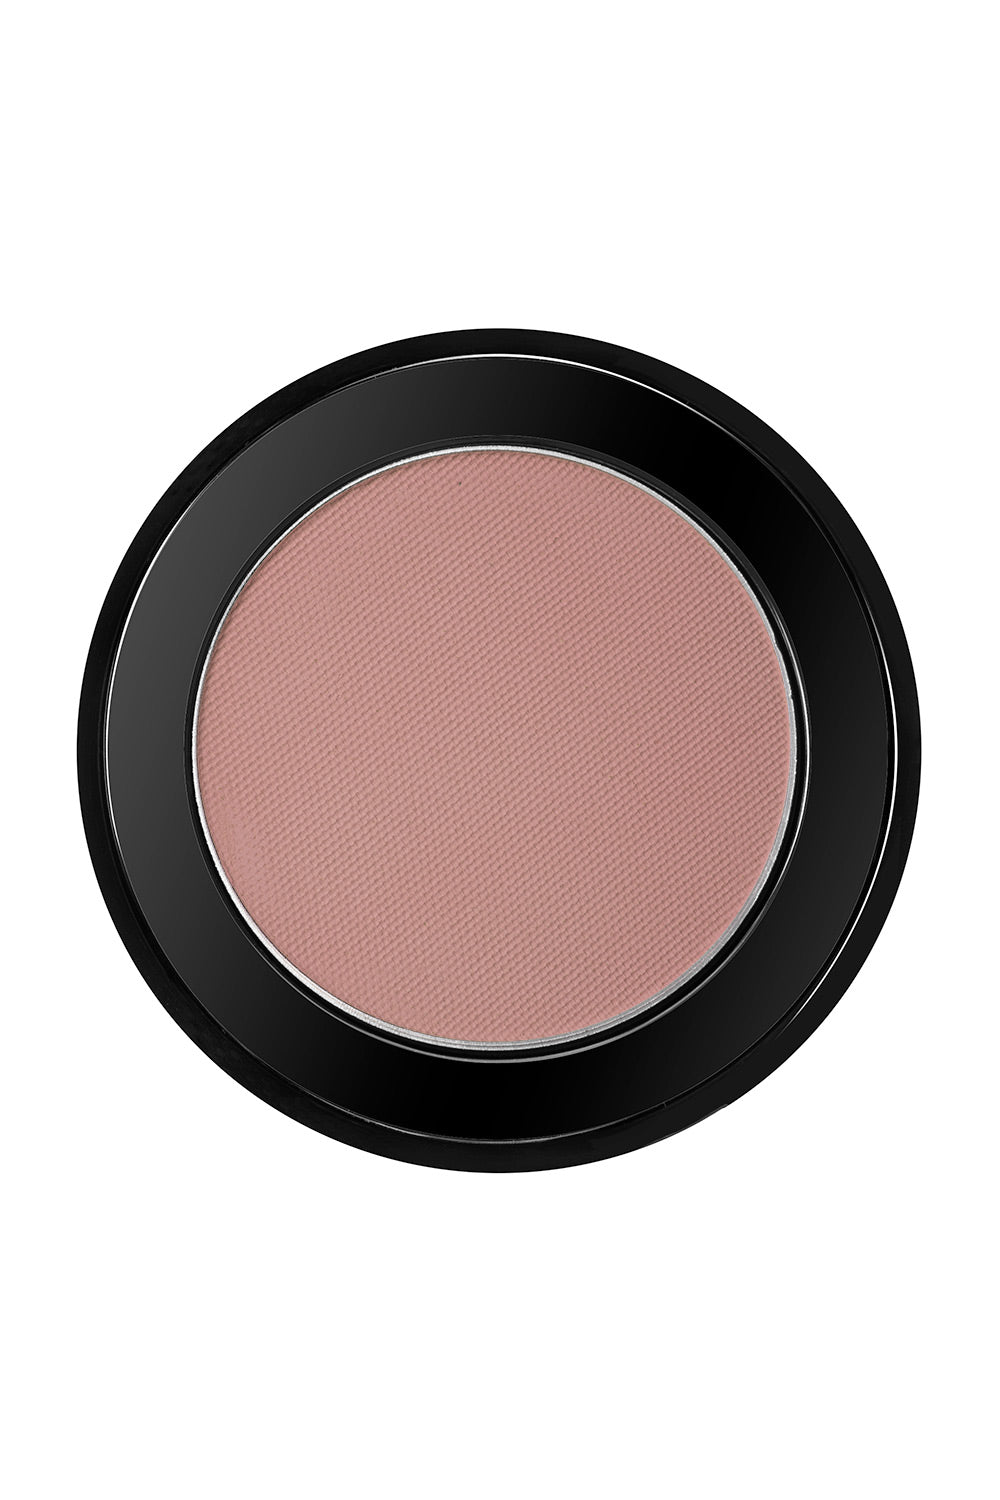 Type 2 Eyeshadow - Roselle